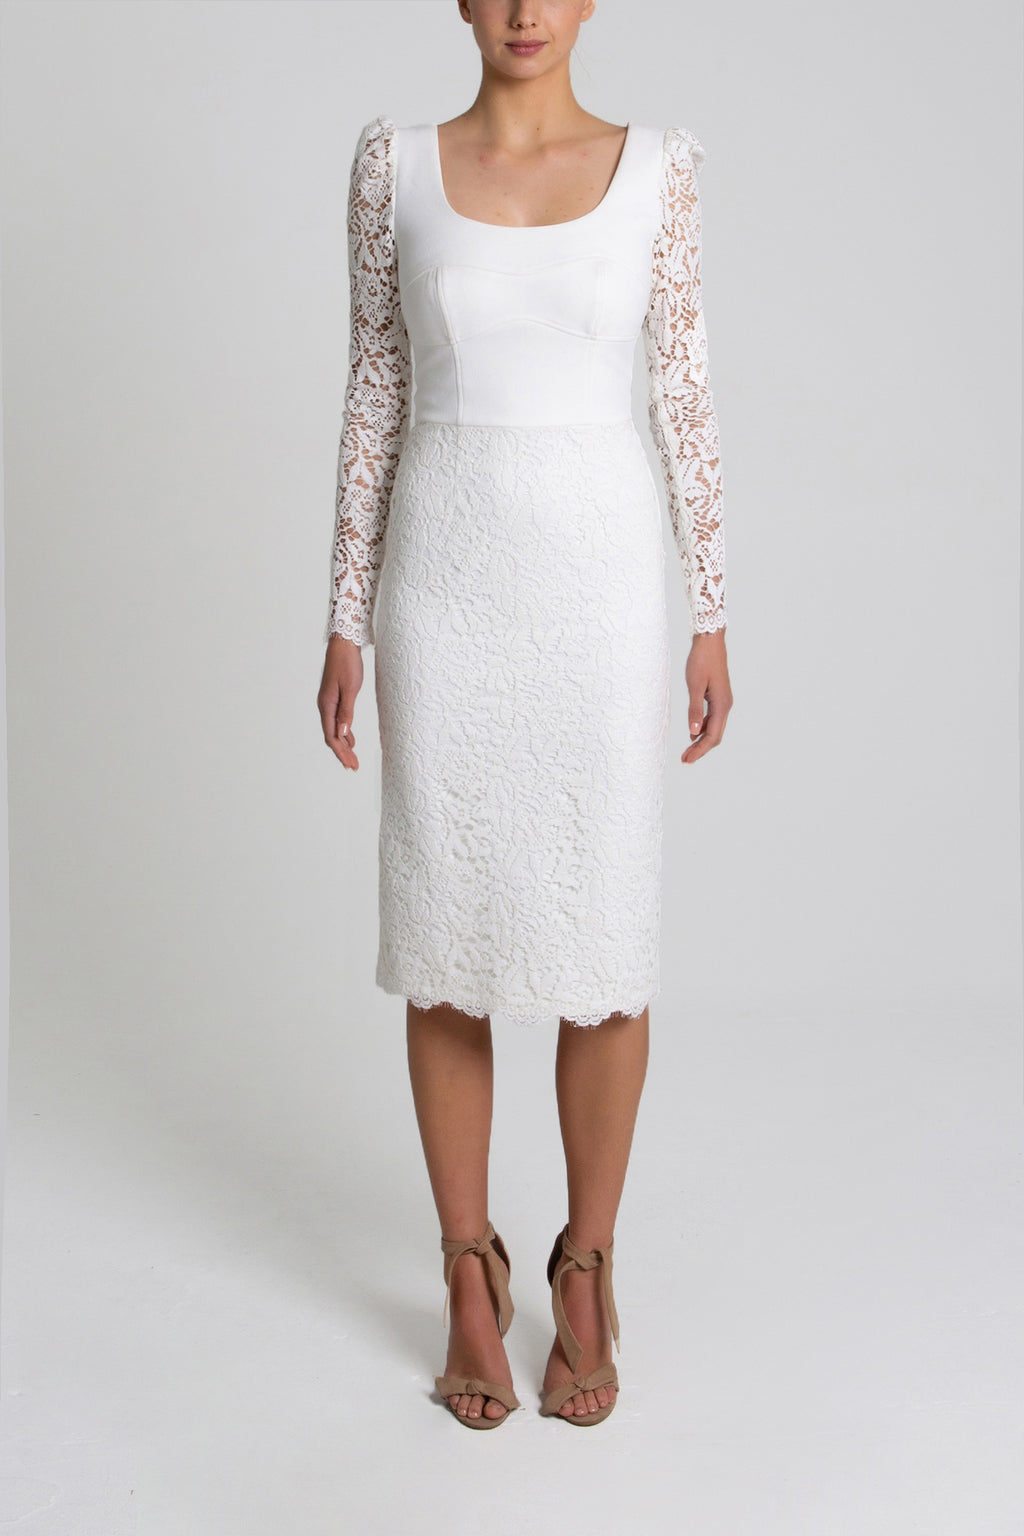 Rebecca Vallance Le Saint Lace Dress in Ivory